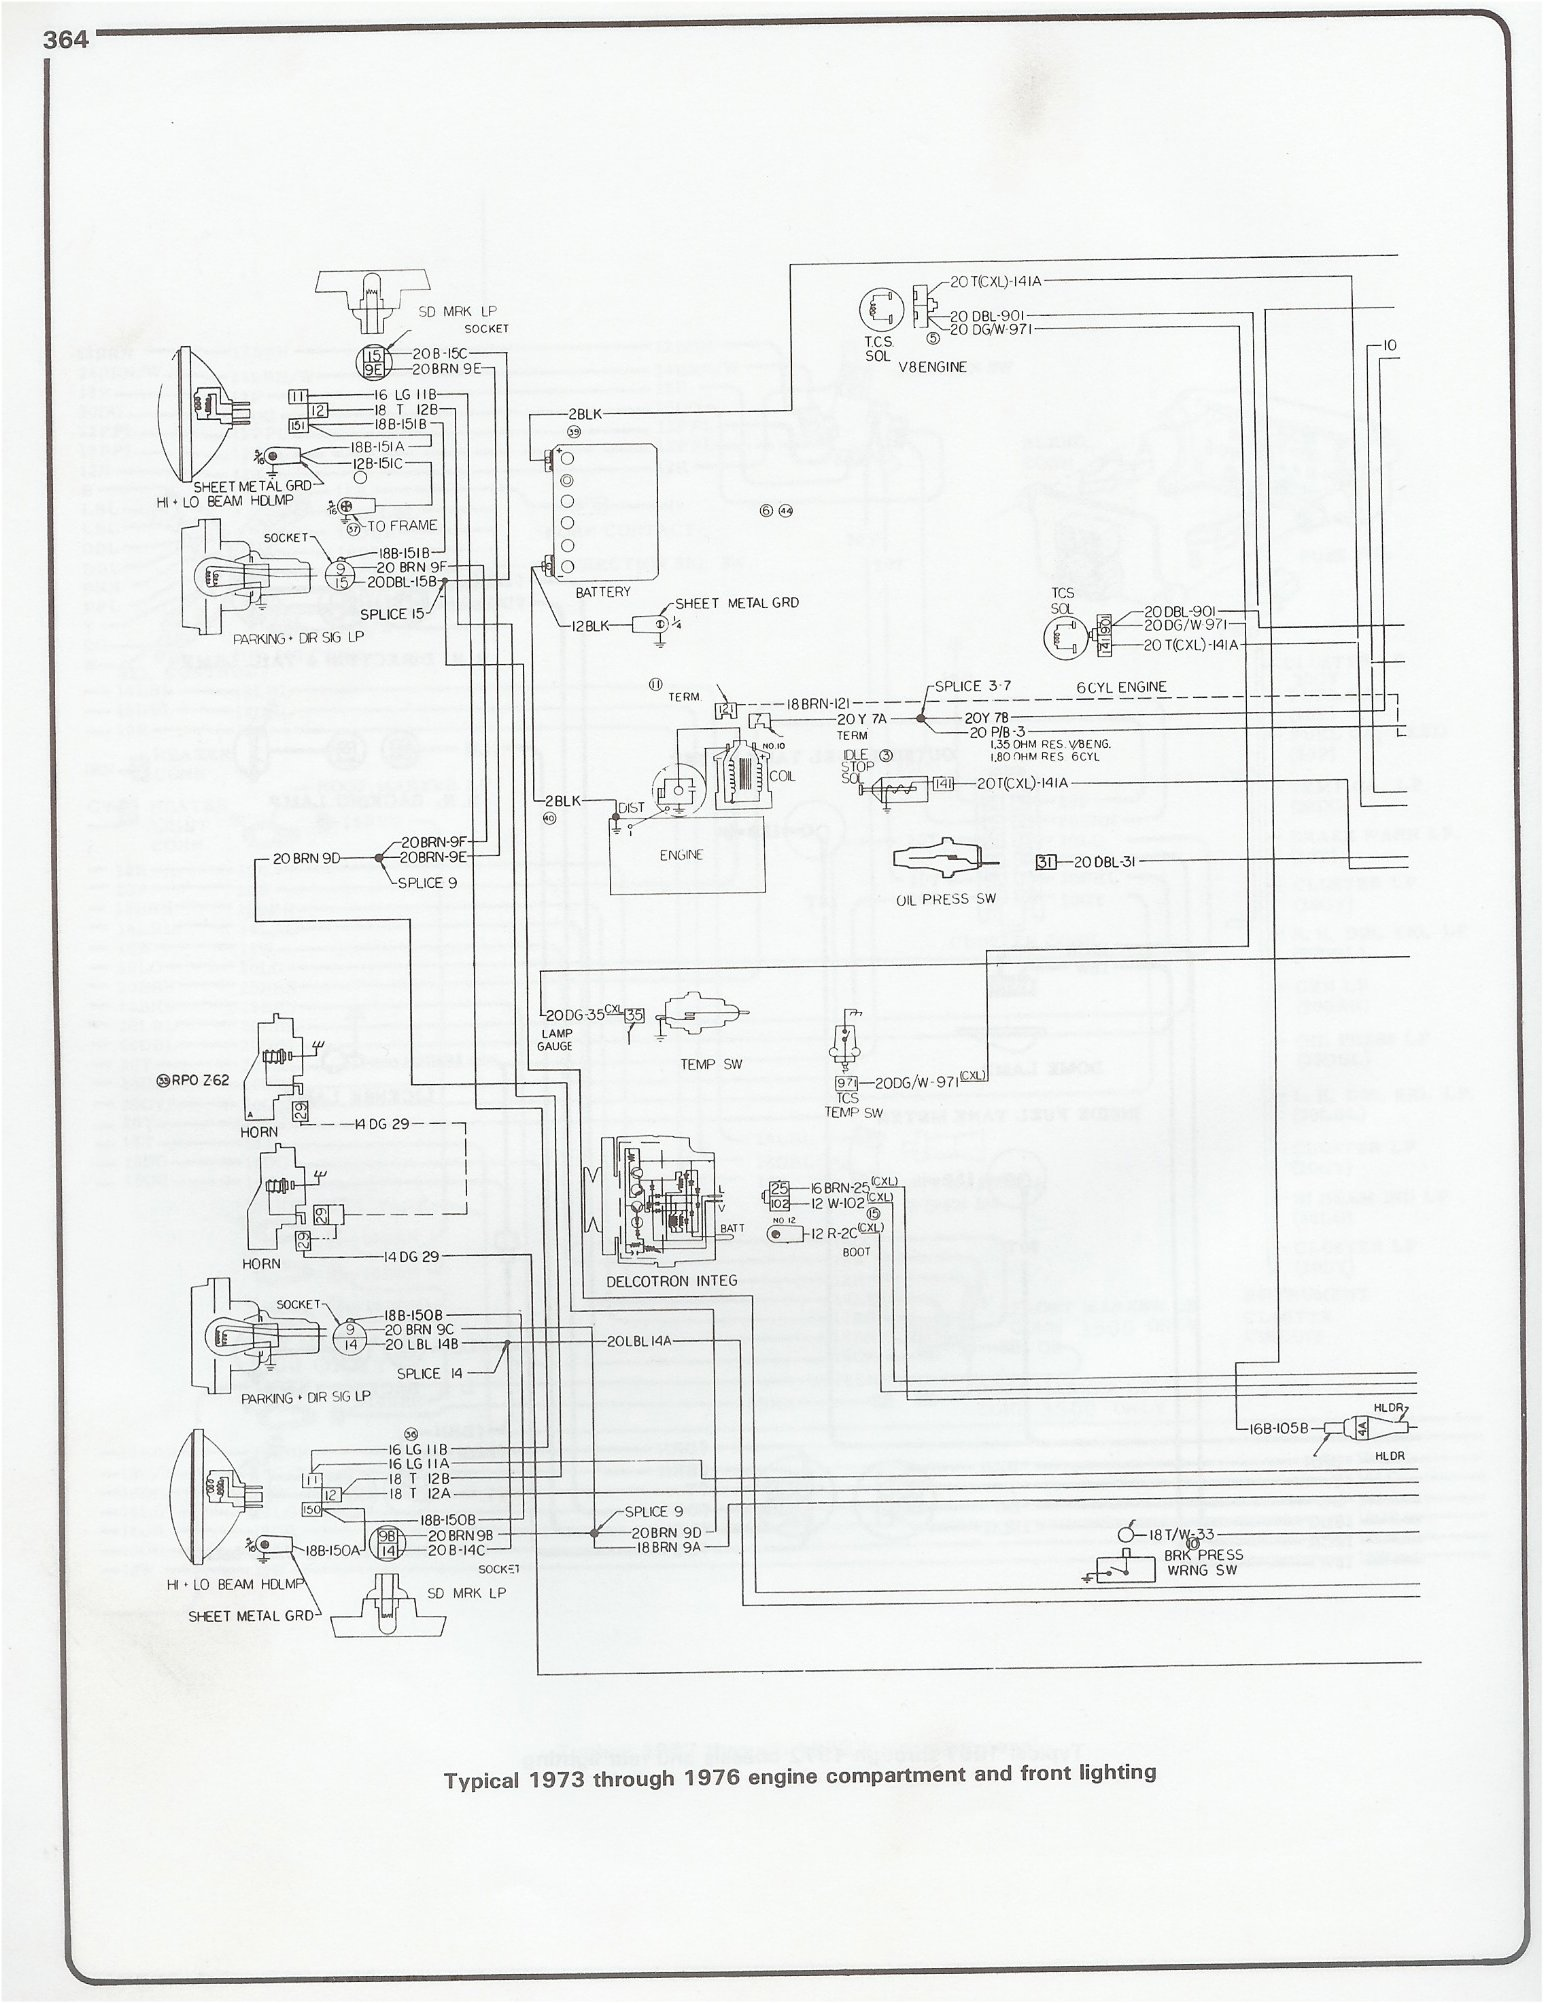 Complete 73 87 Wiring Diagrams 1970 Firebird Wiring Diagram 1967 C30 Wiring  Diagram